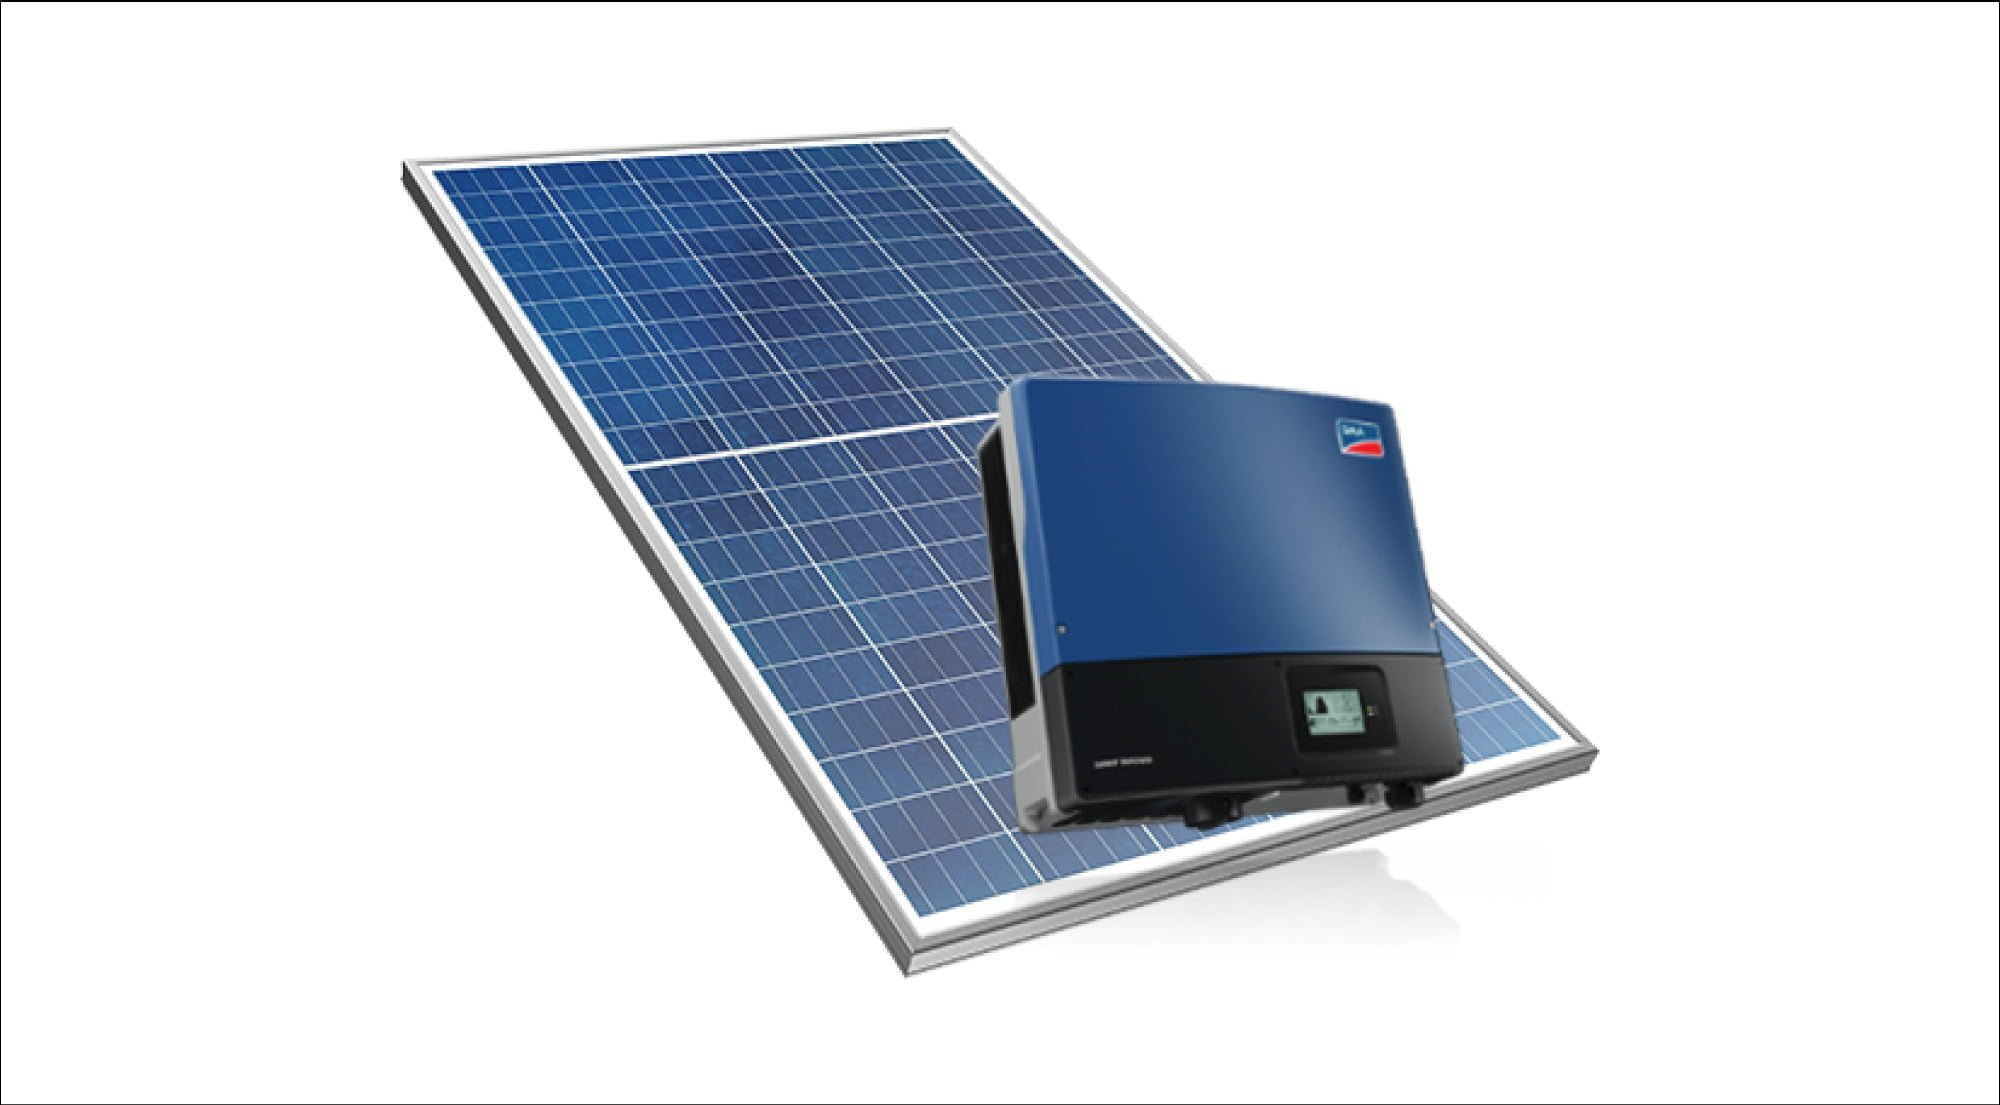 Tier 1 PV systems-solar PV components